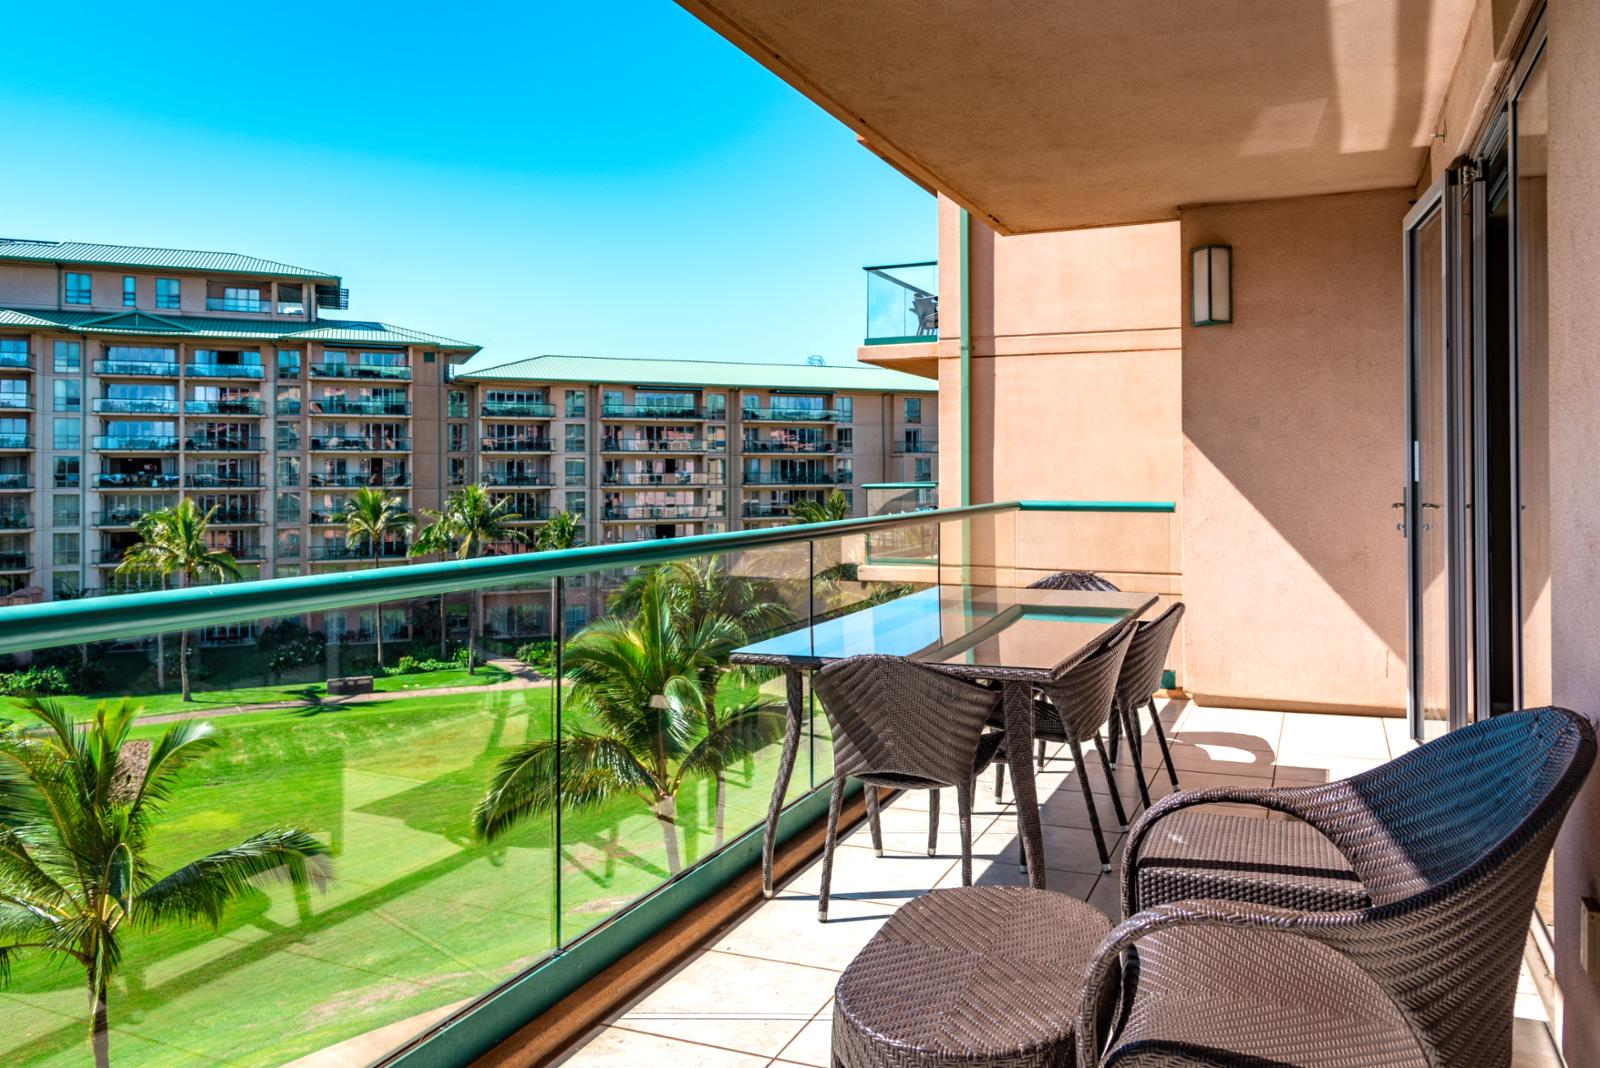 Relax on your private balcony with cool ocean breezes